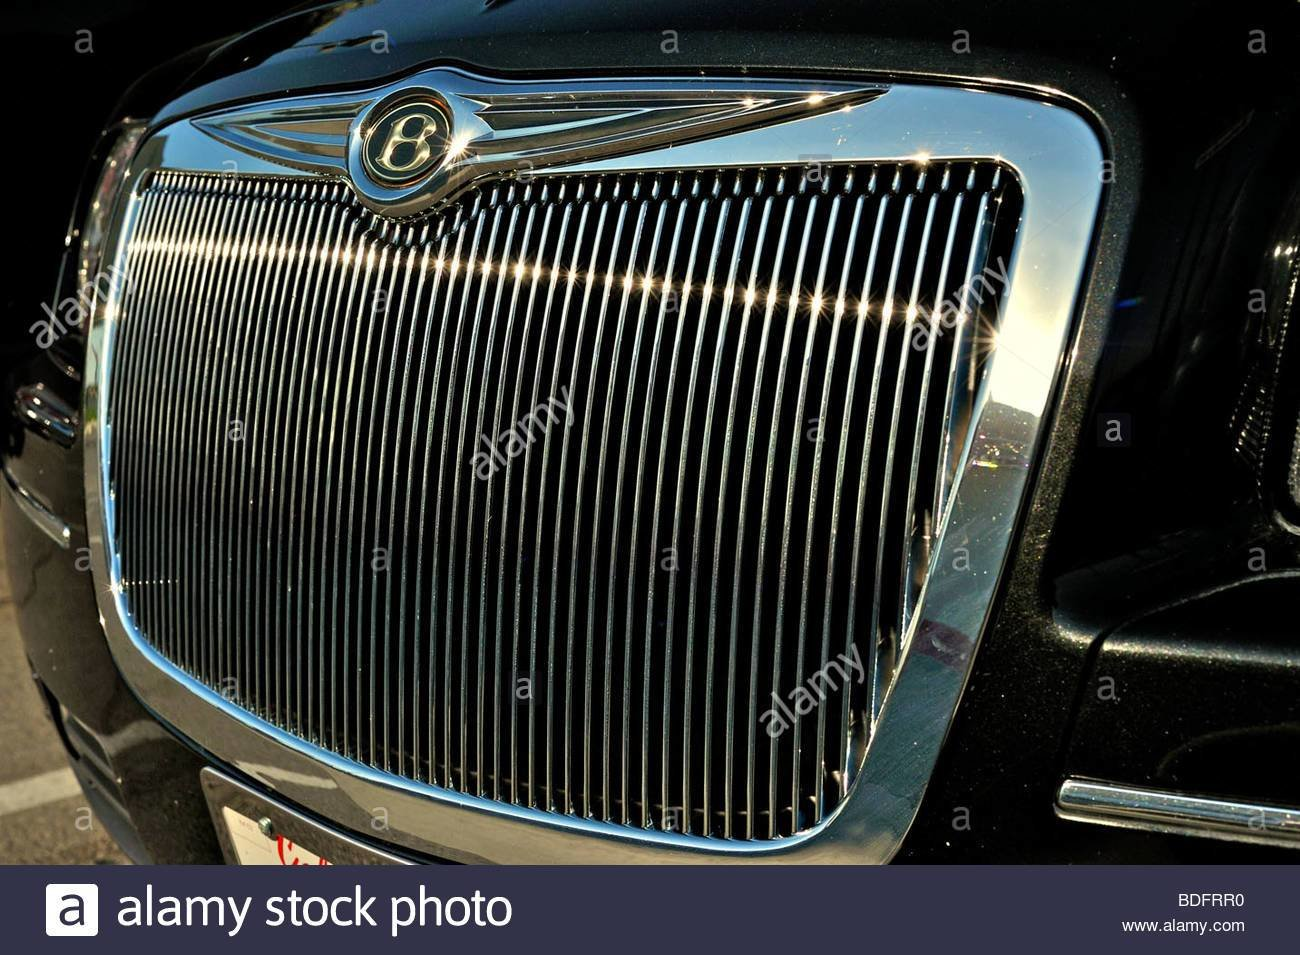 New Bentley Grill Stock Photos Bentley Grill Stock Images On This Month